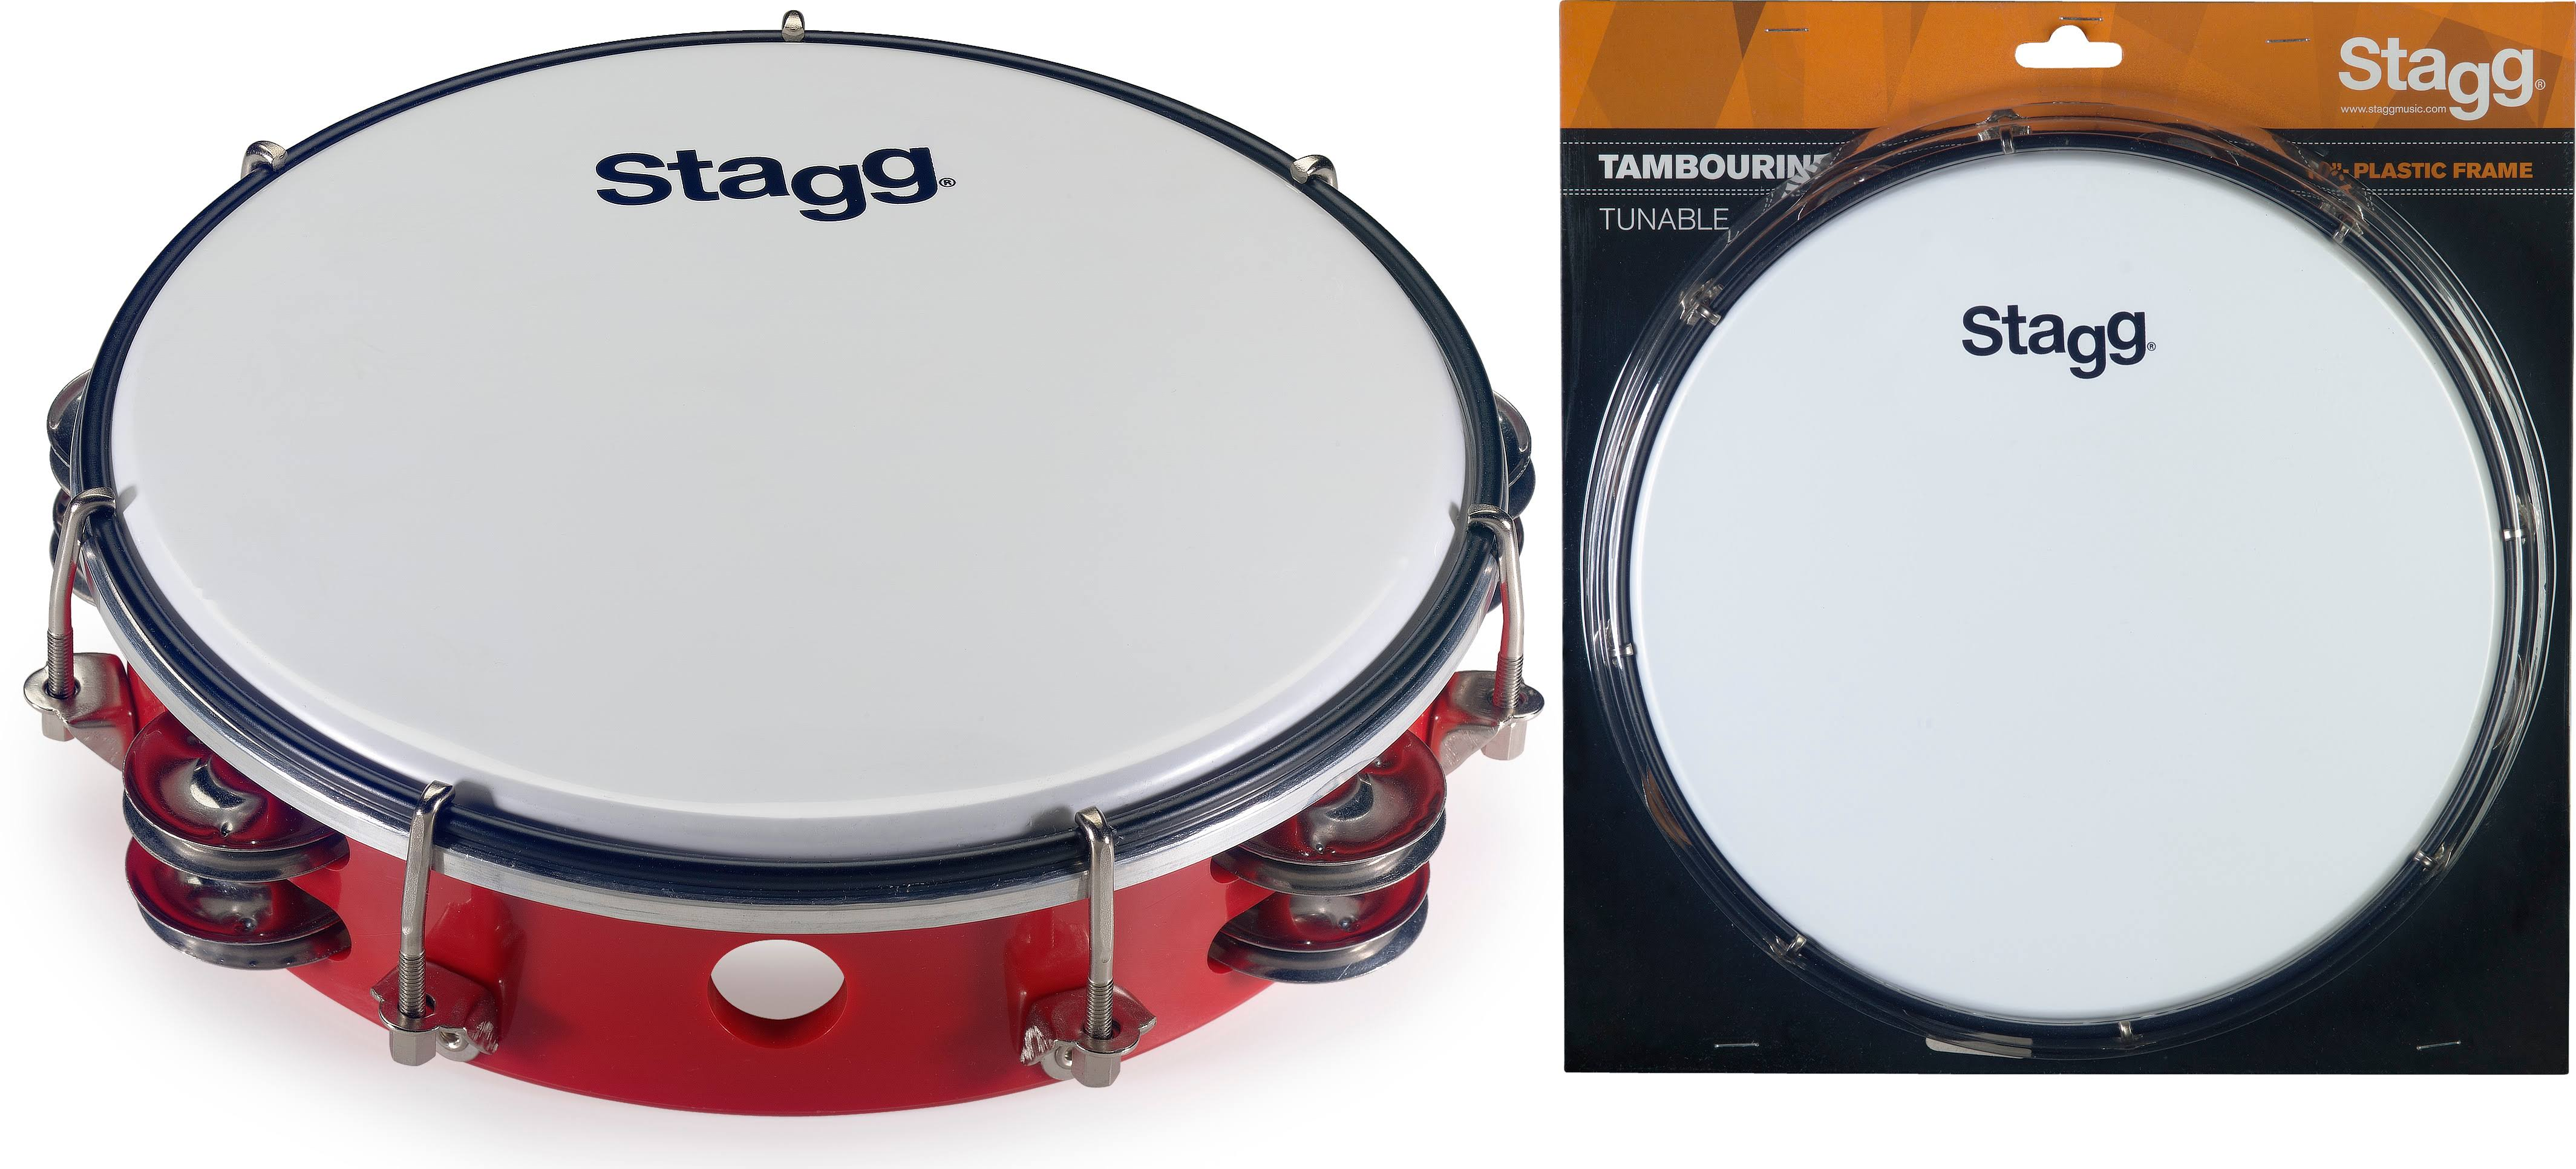 "Stagg TAB-208P/RD 8"" Tuneable Plastic Tambourine"